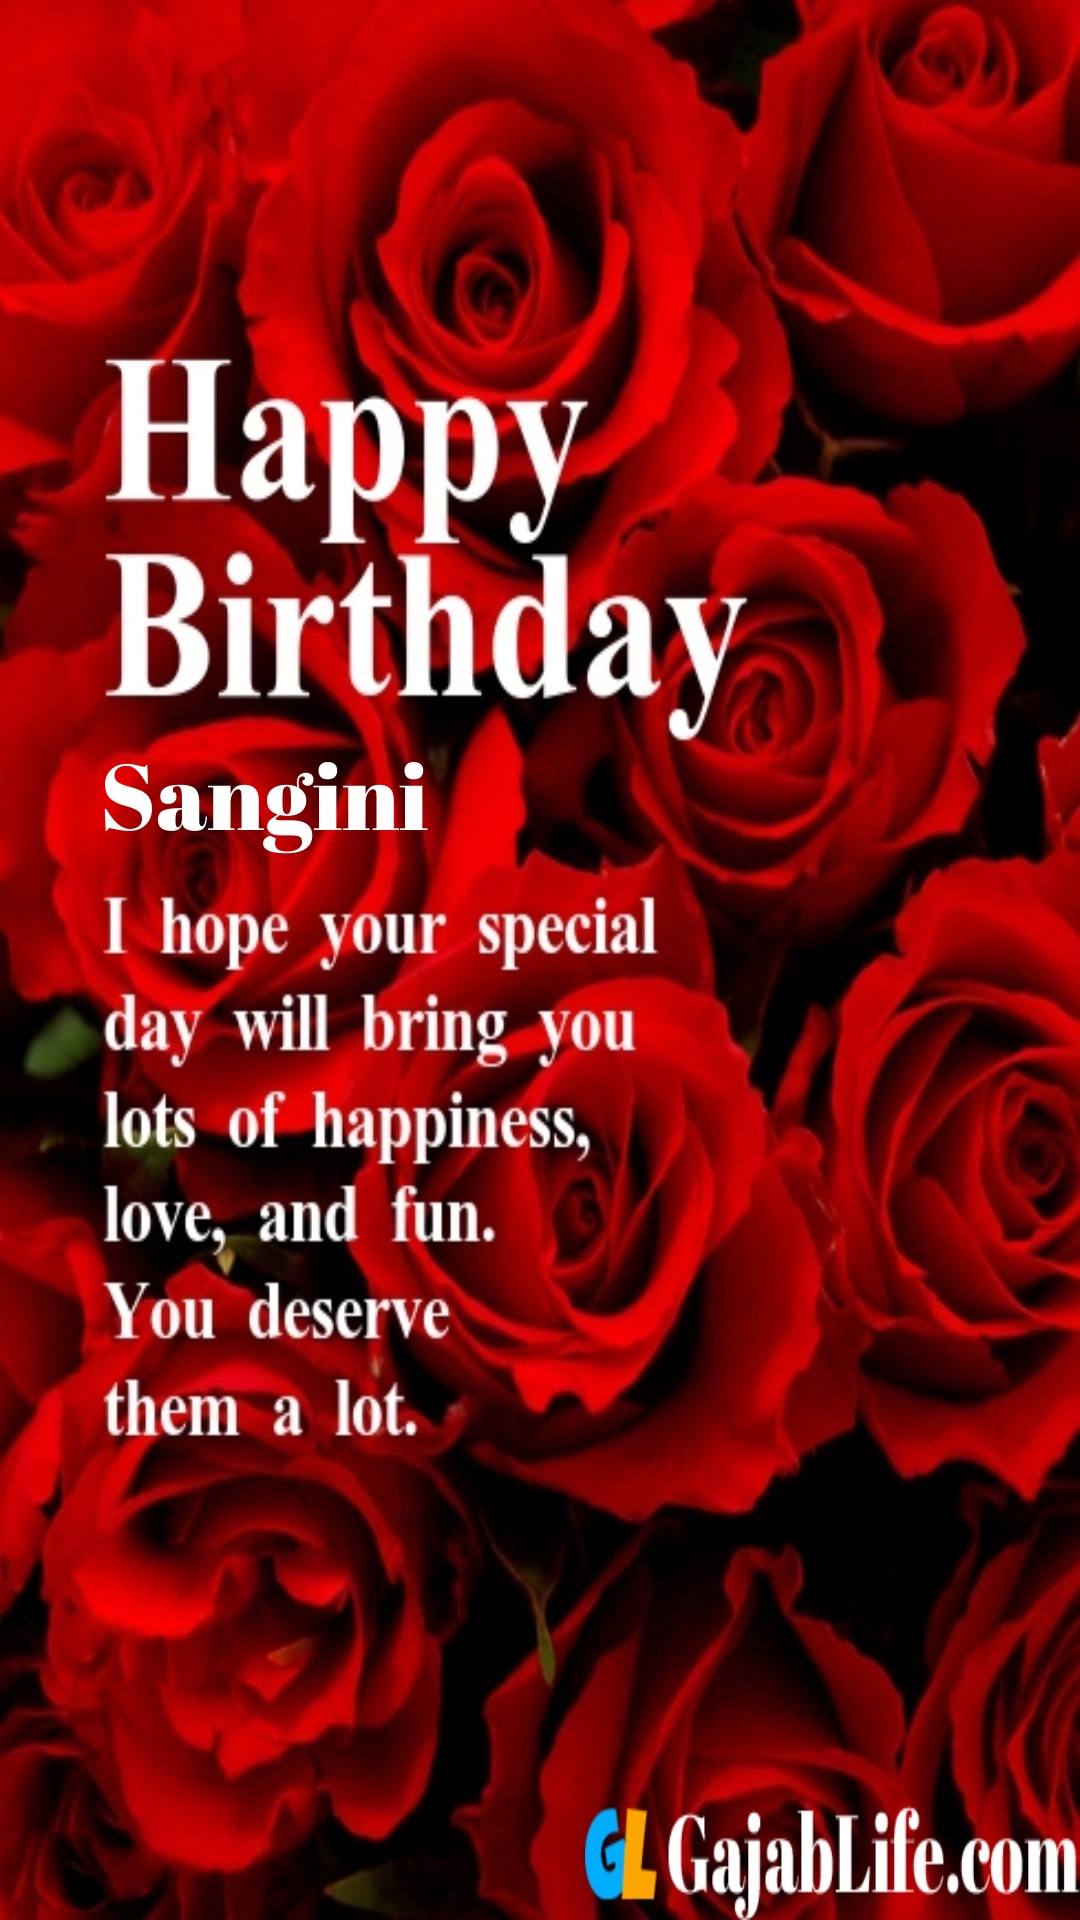 Sangini birthday greeting card with rose & love